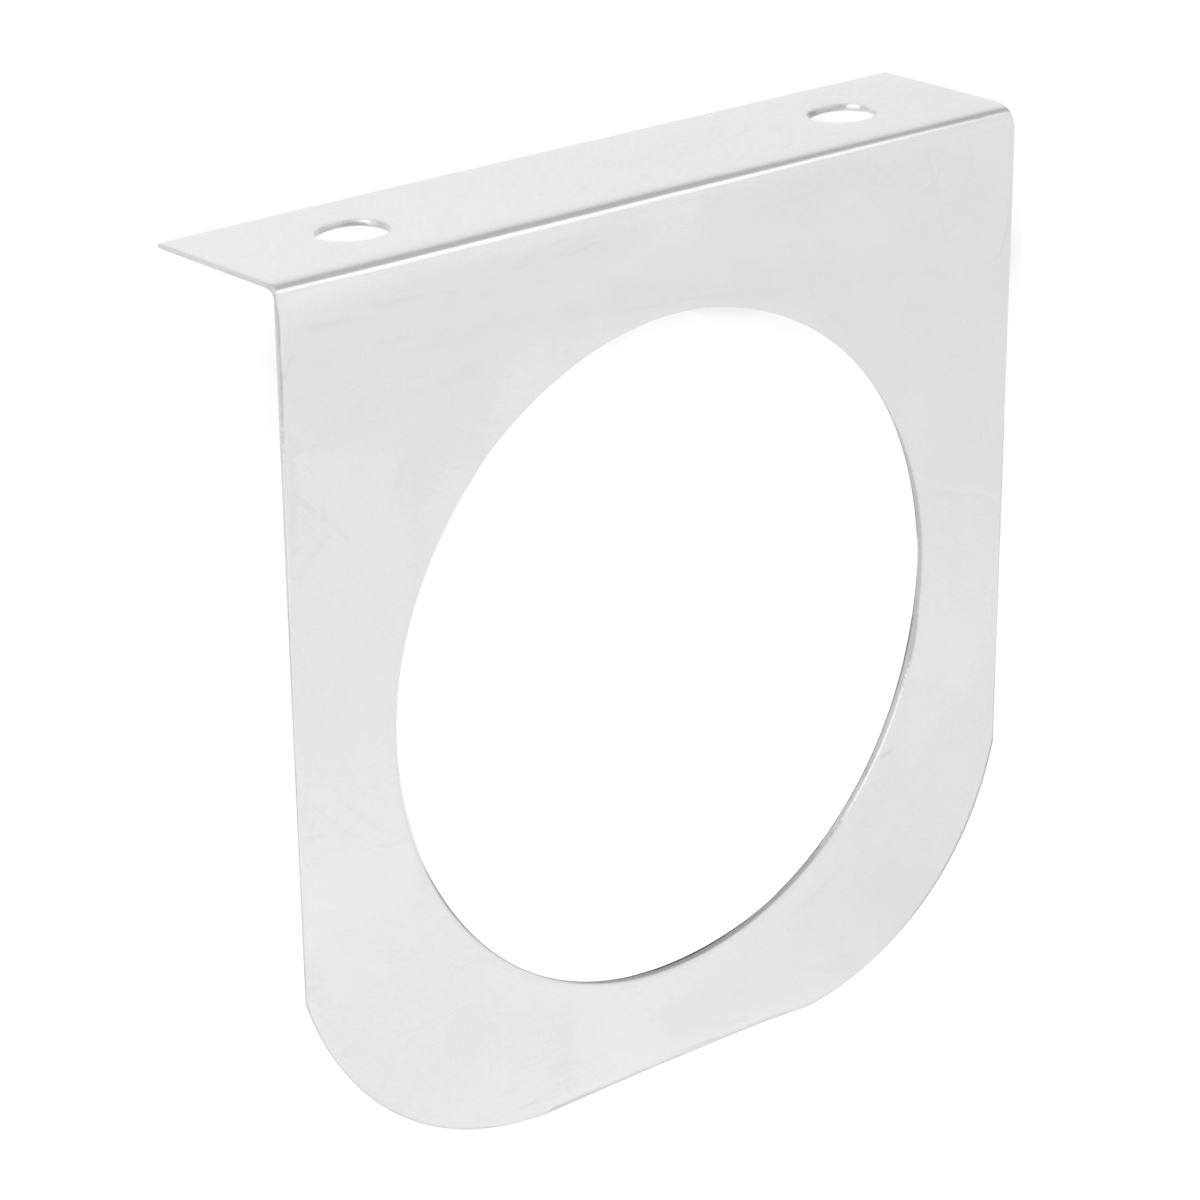 #81392 Stainless Steel Light Mounting Bracket Only